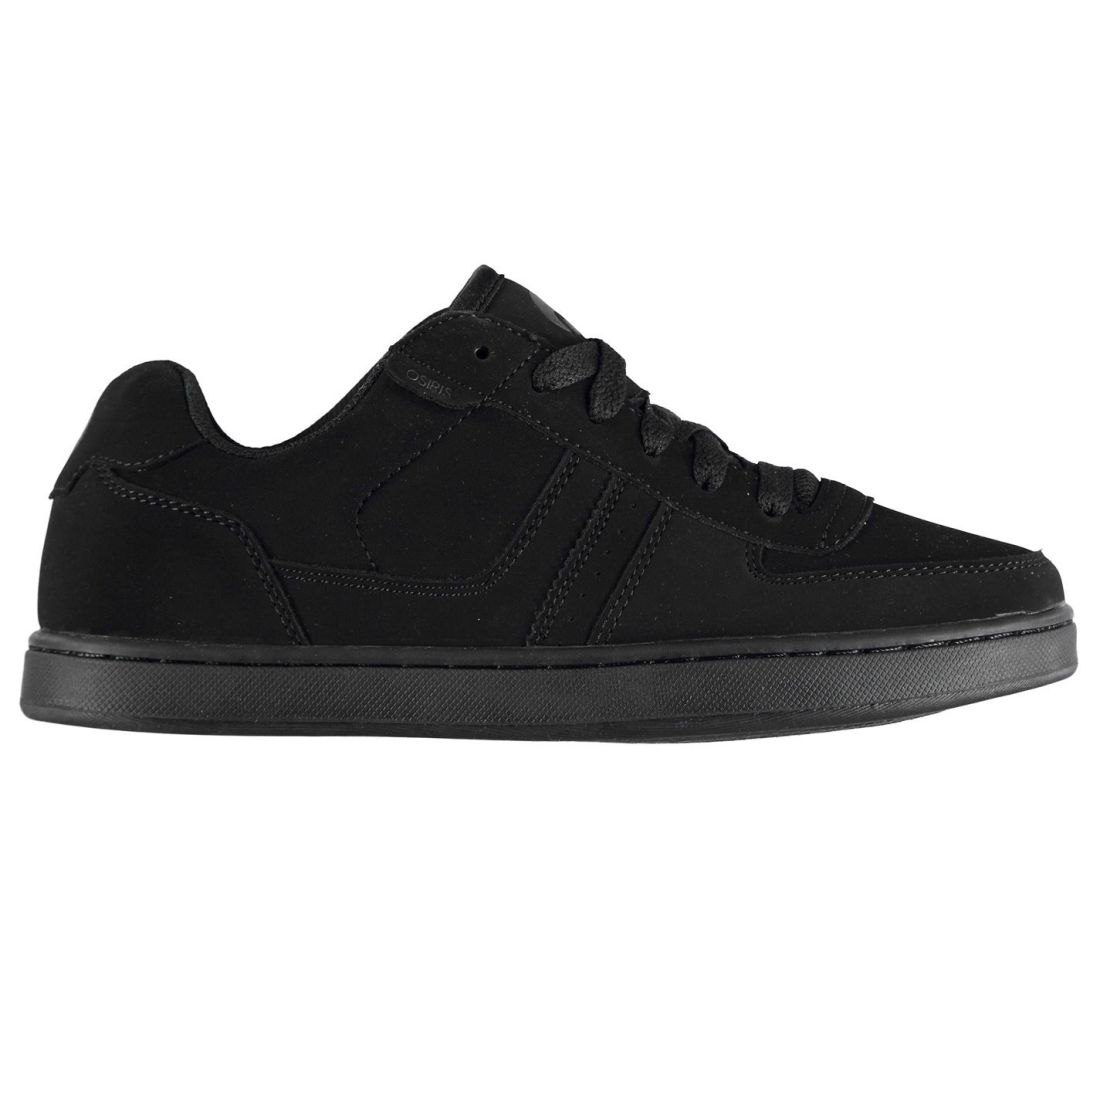 606442d79a7 Osiris Mens Relic Trainers Skate Shoes Lace Up Padded Ankle Collar ...